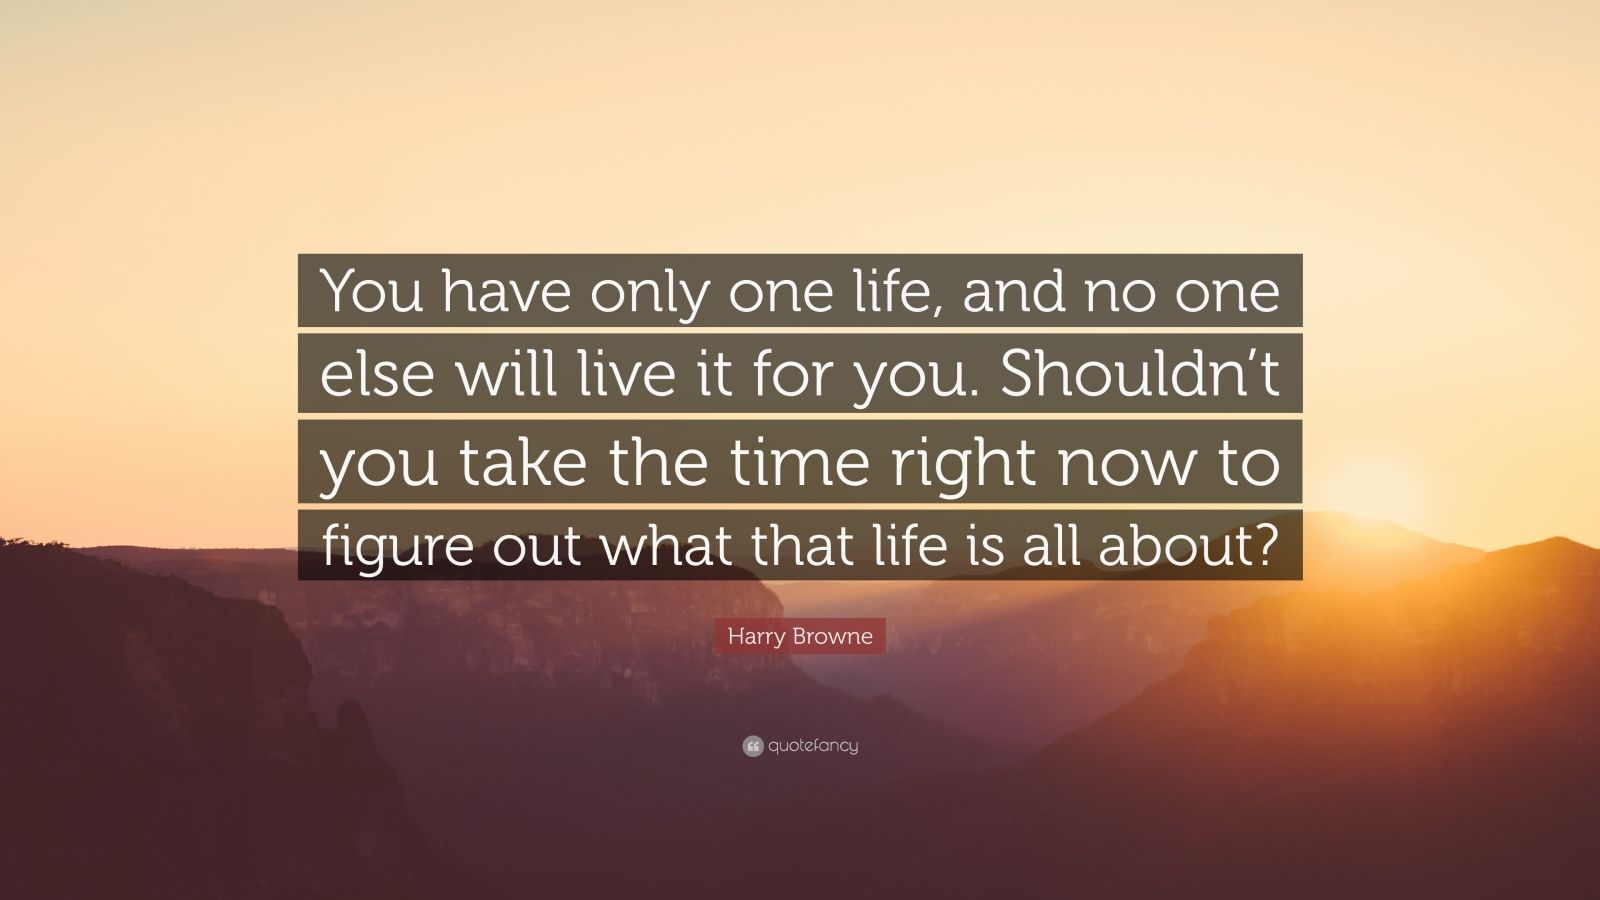 """Harry Browne Quote: """"You have only one life, and no one else will live it for you. Shouldn't you take the time right now to figure out what that life is all about?"""""""